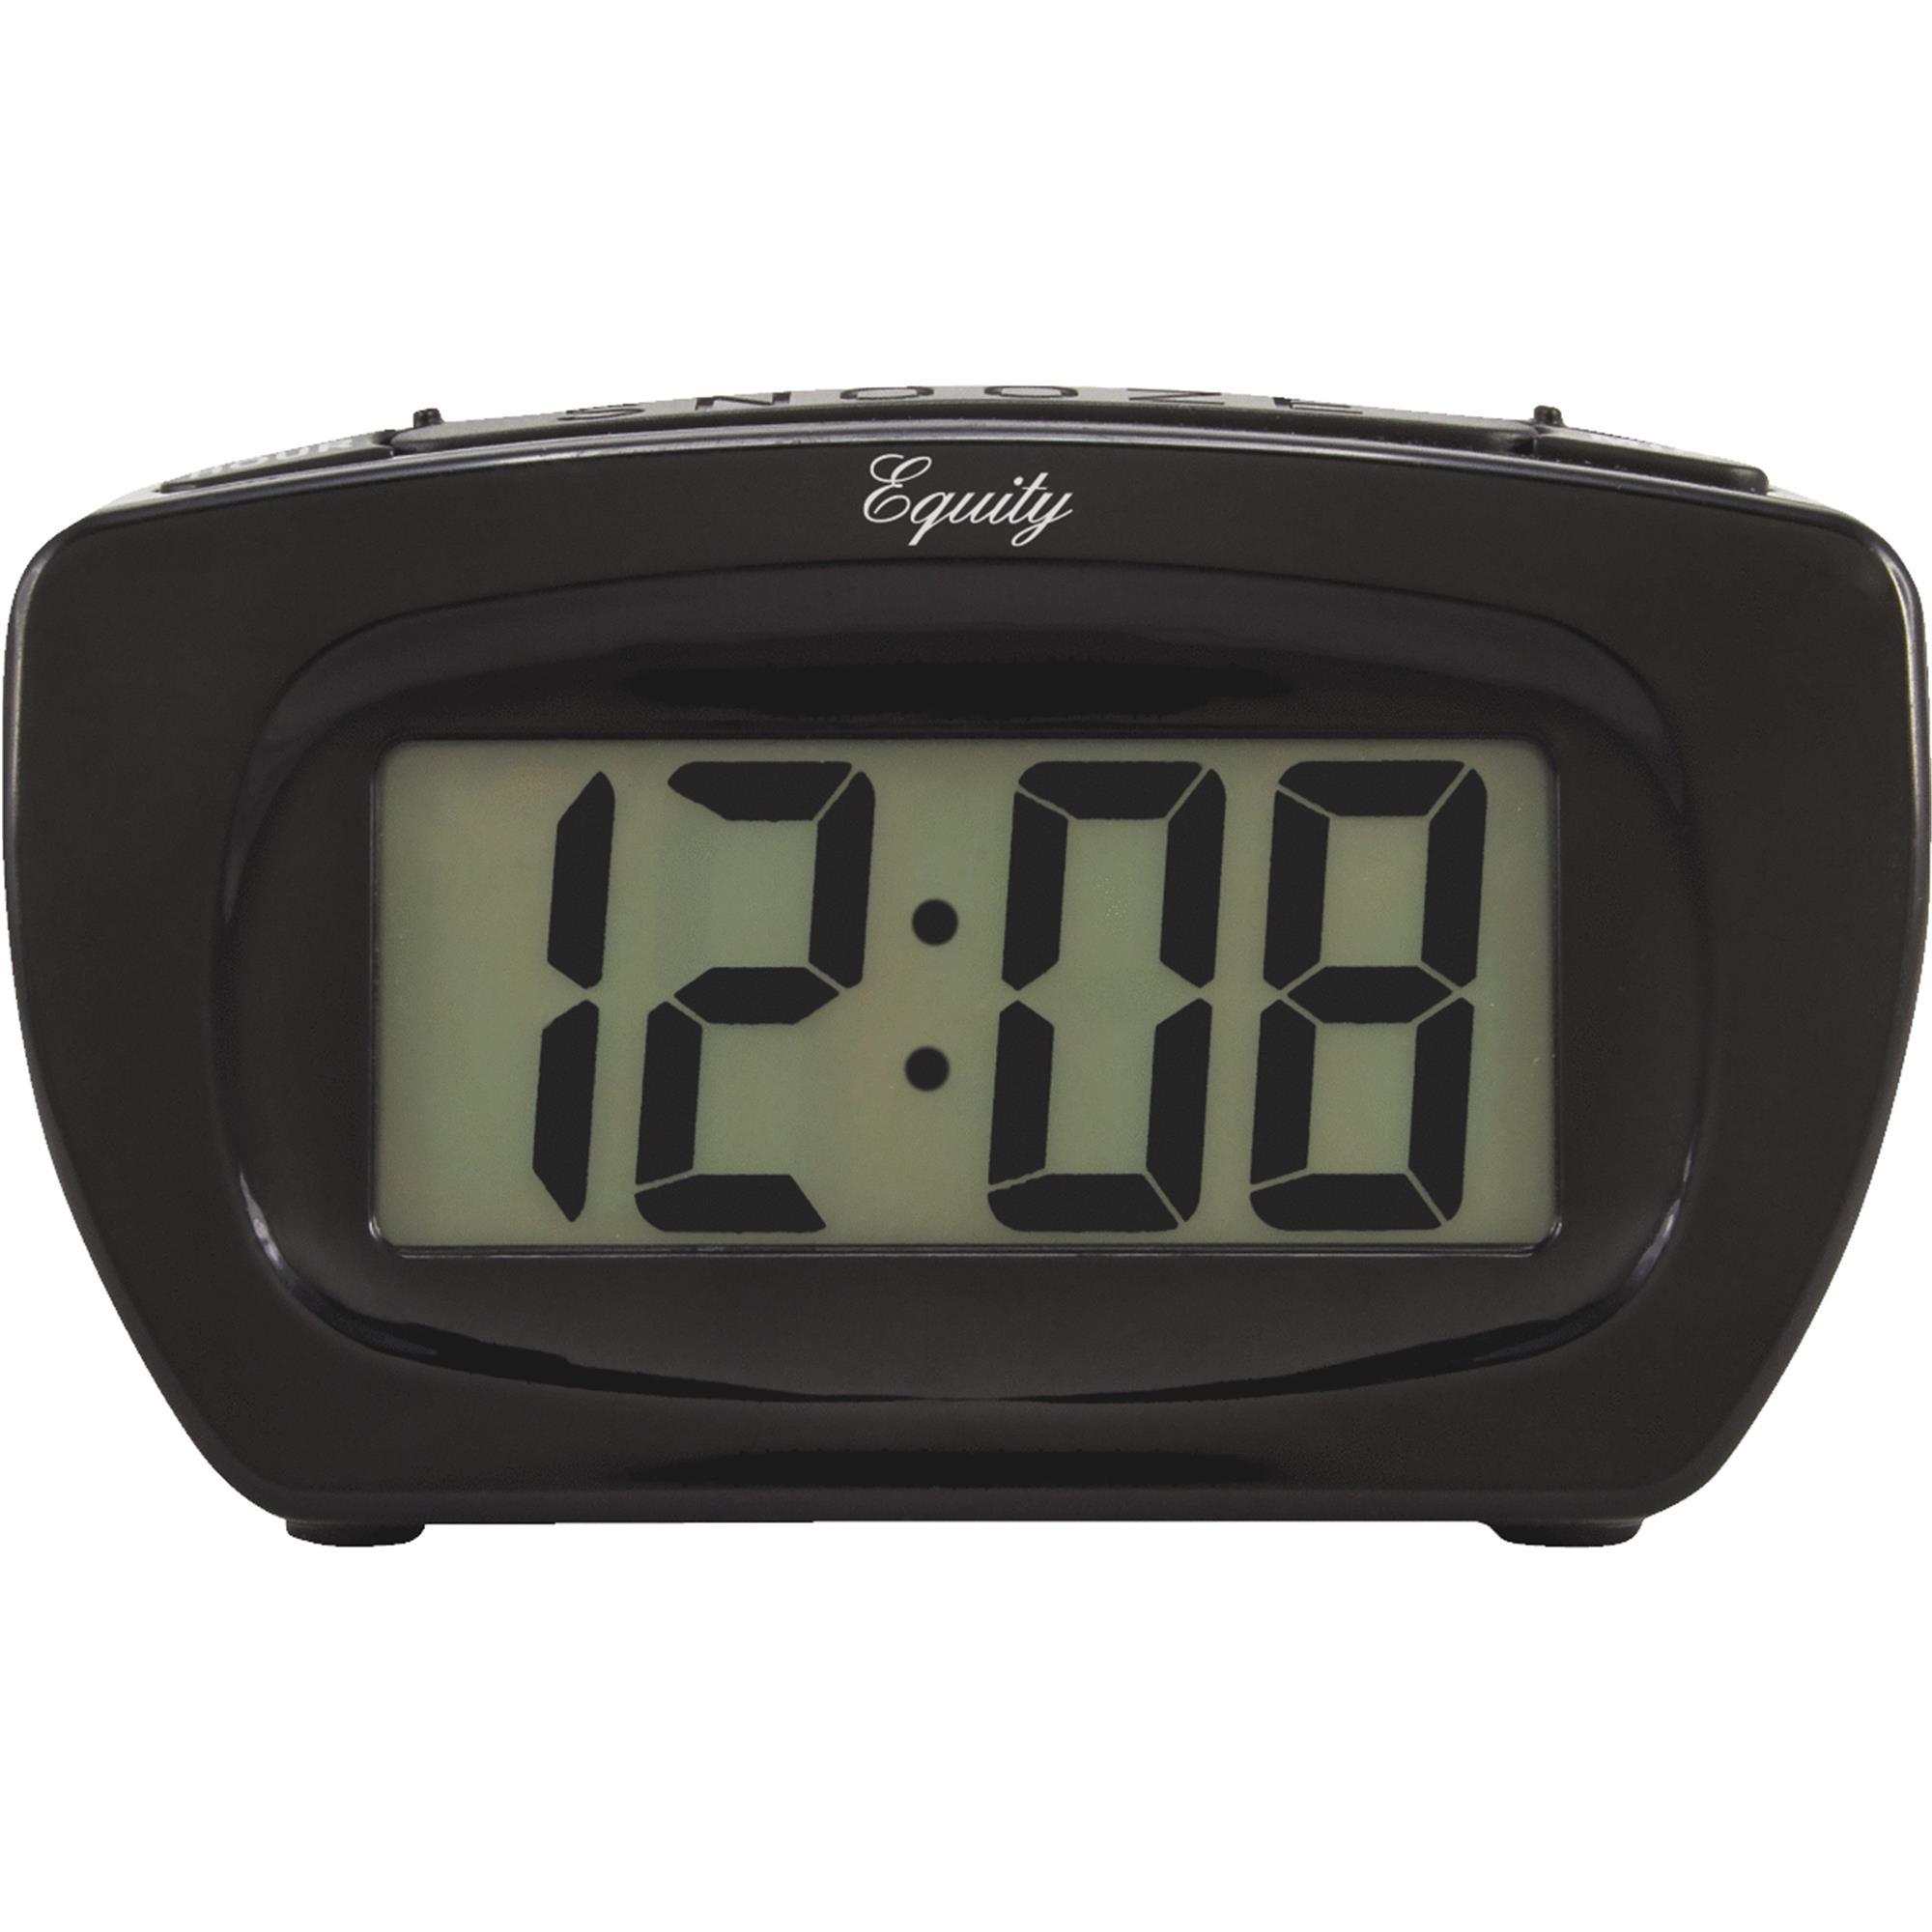 La Crosse Technology Equity Extra Loud Battery Operated Alarm Clock